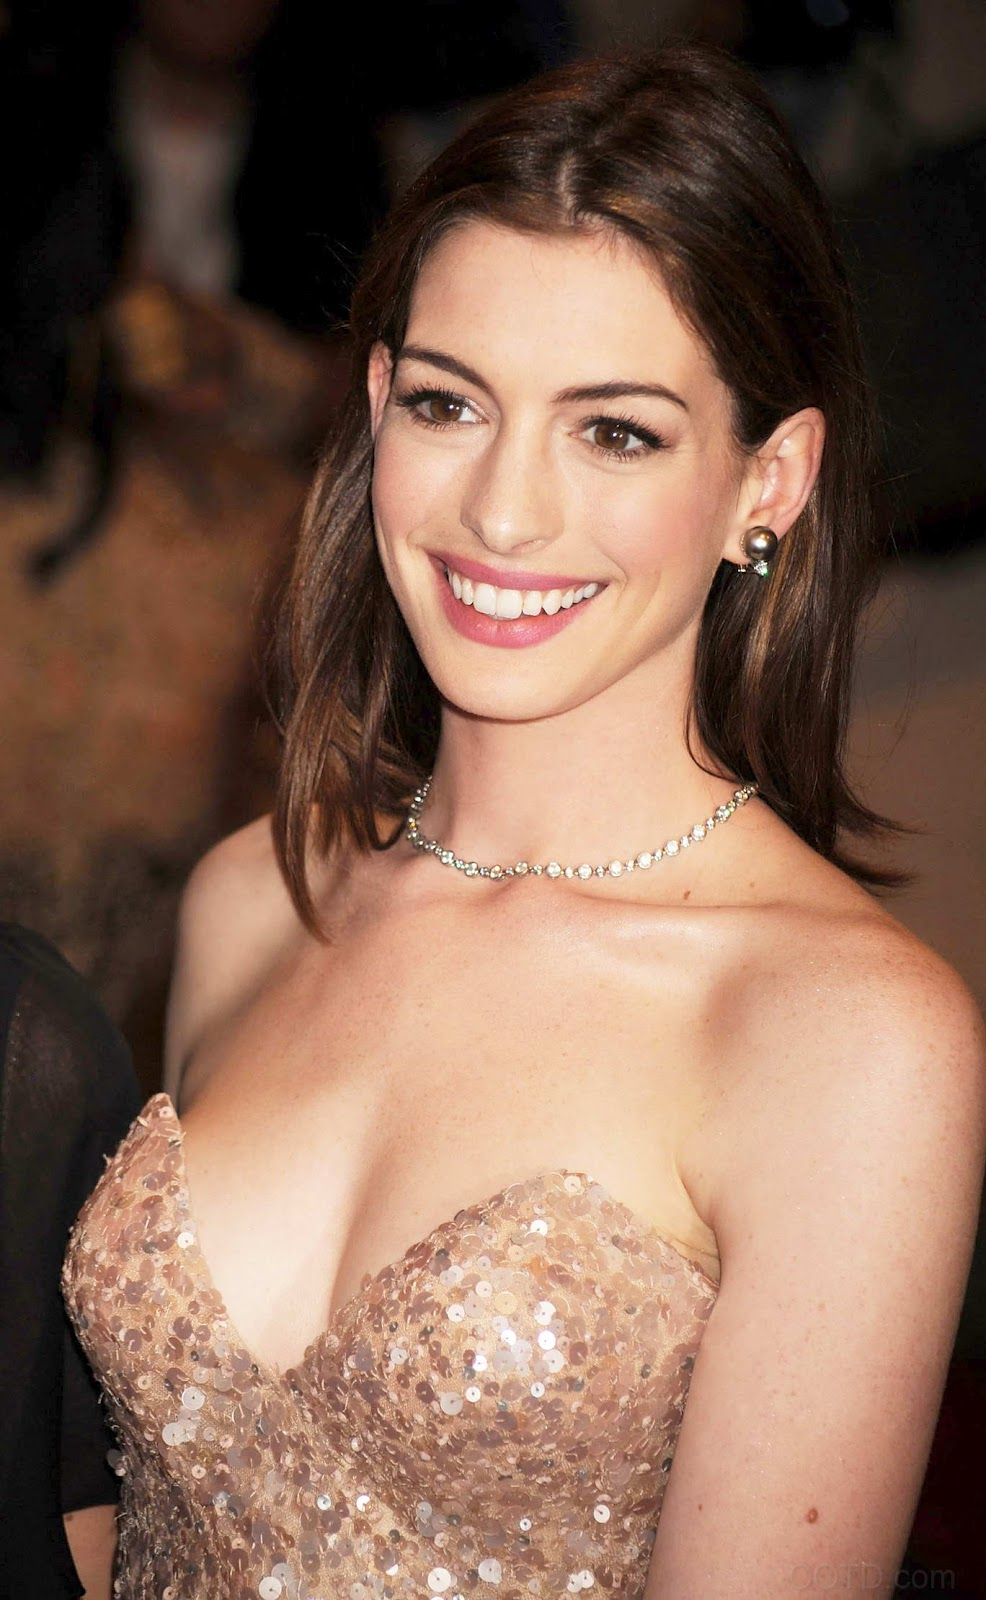 Anne hathaway pics picture 81